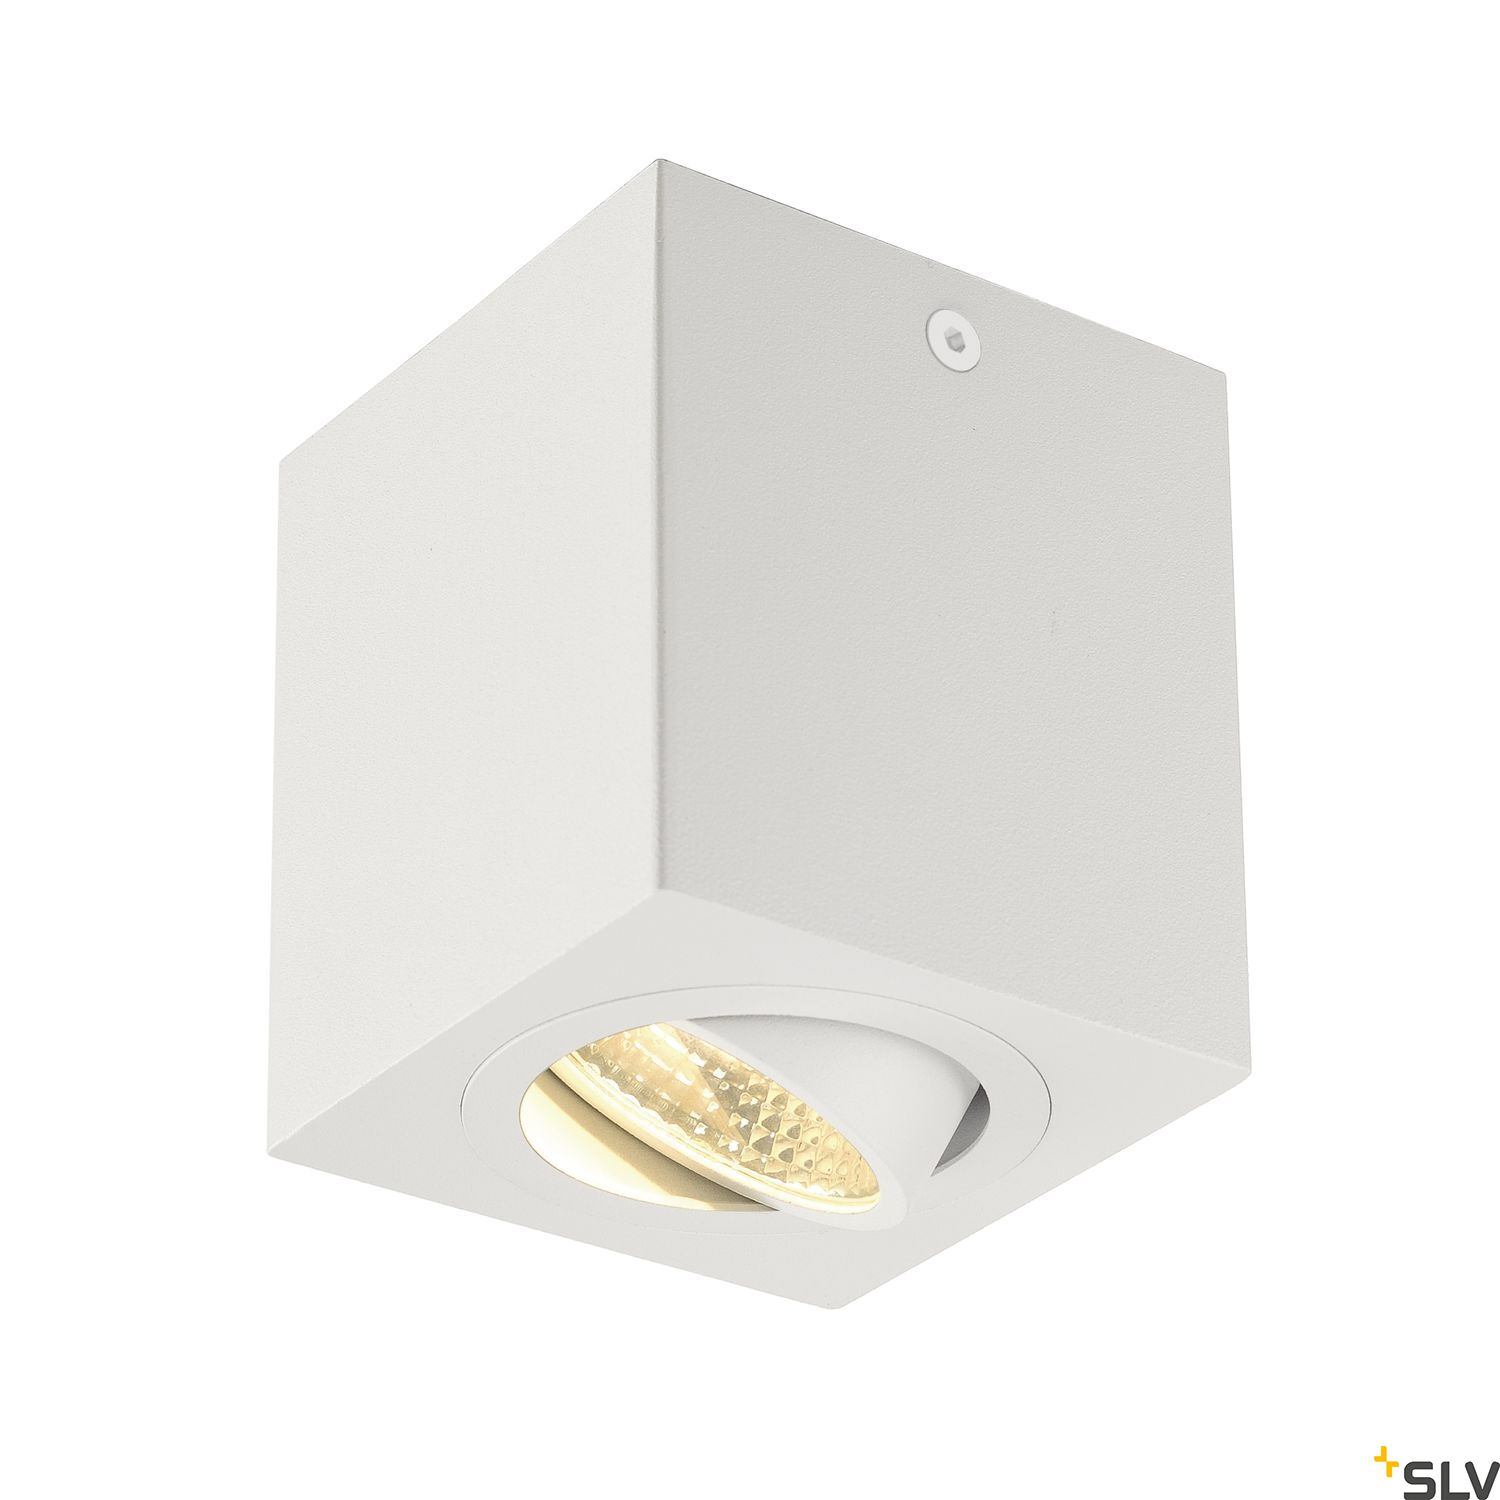 1 Stk TRILEDO SQUARE CL, mattweiss, LED, 6W, 38°, 3000K LI113941--